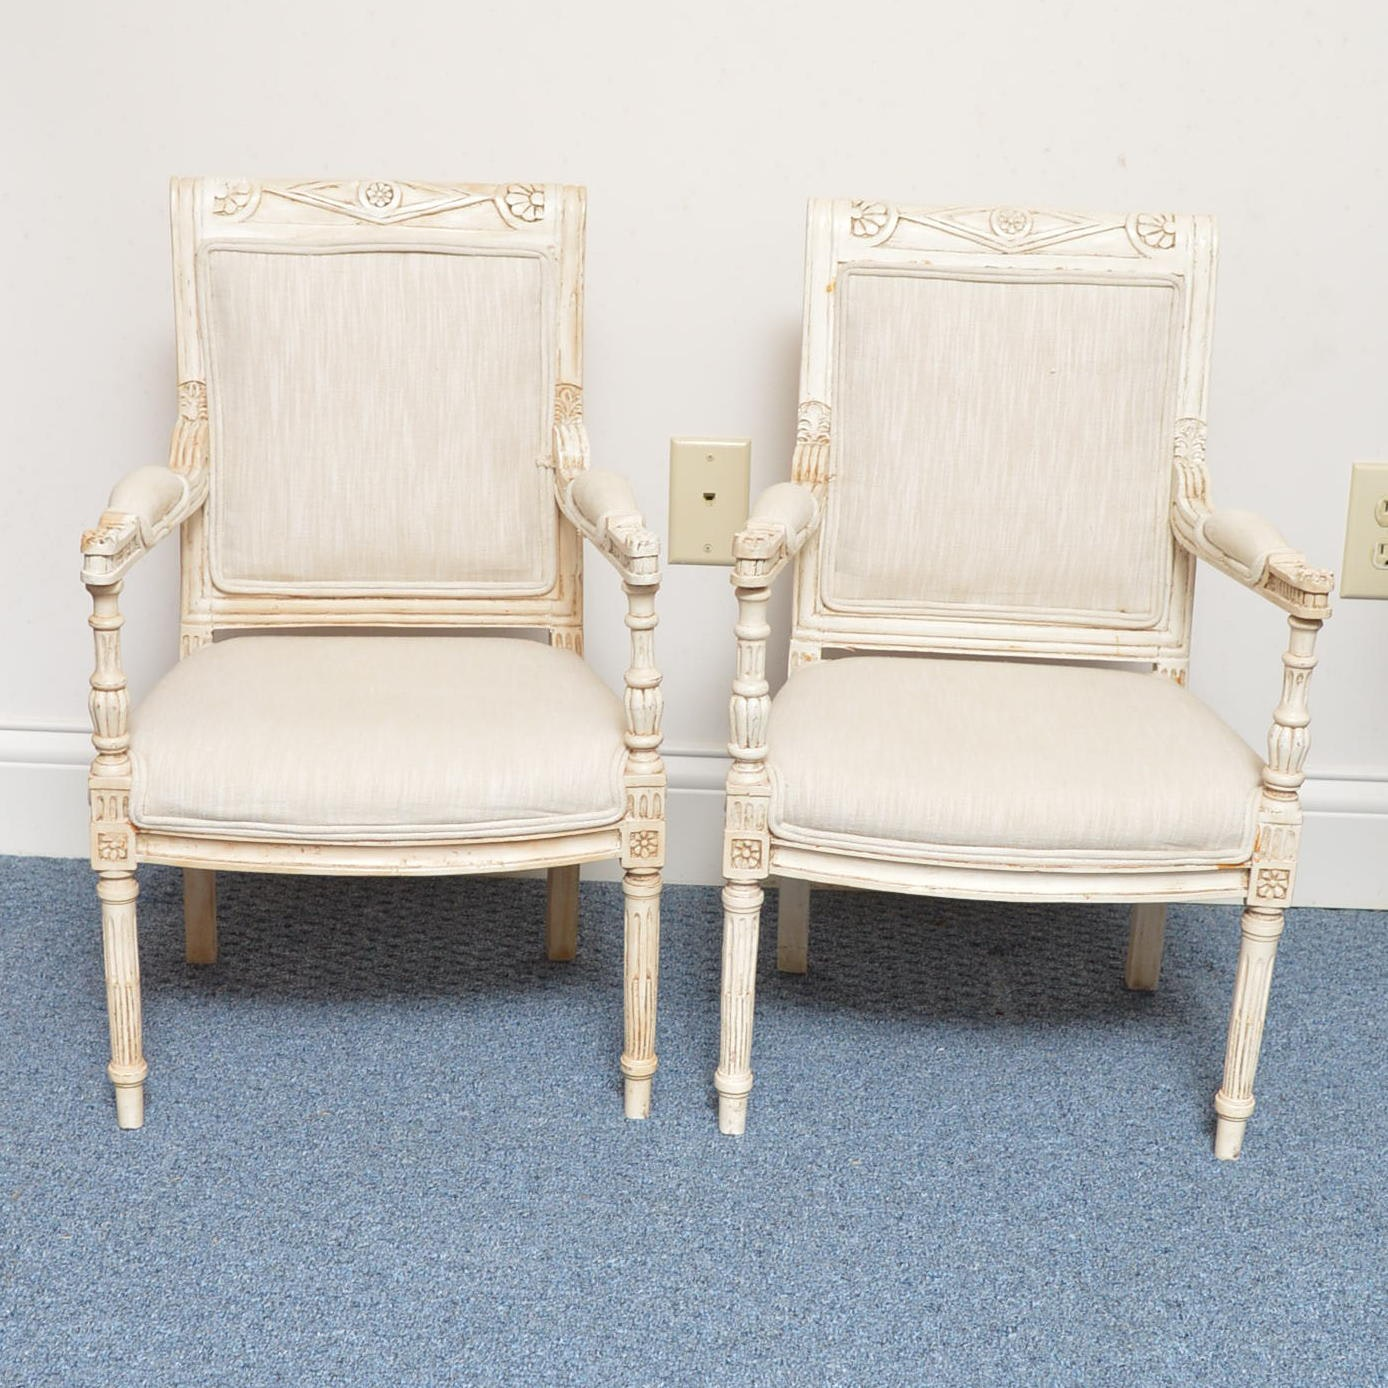 French Directoire-Style Painted Chairs for Children